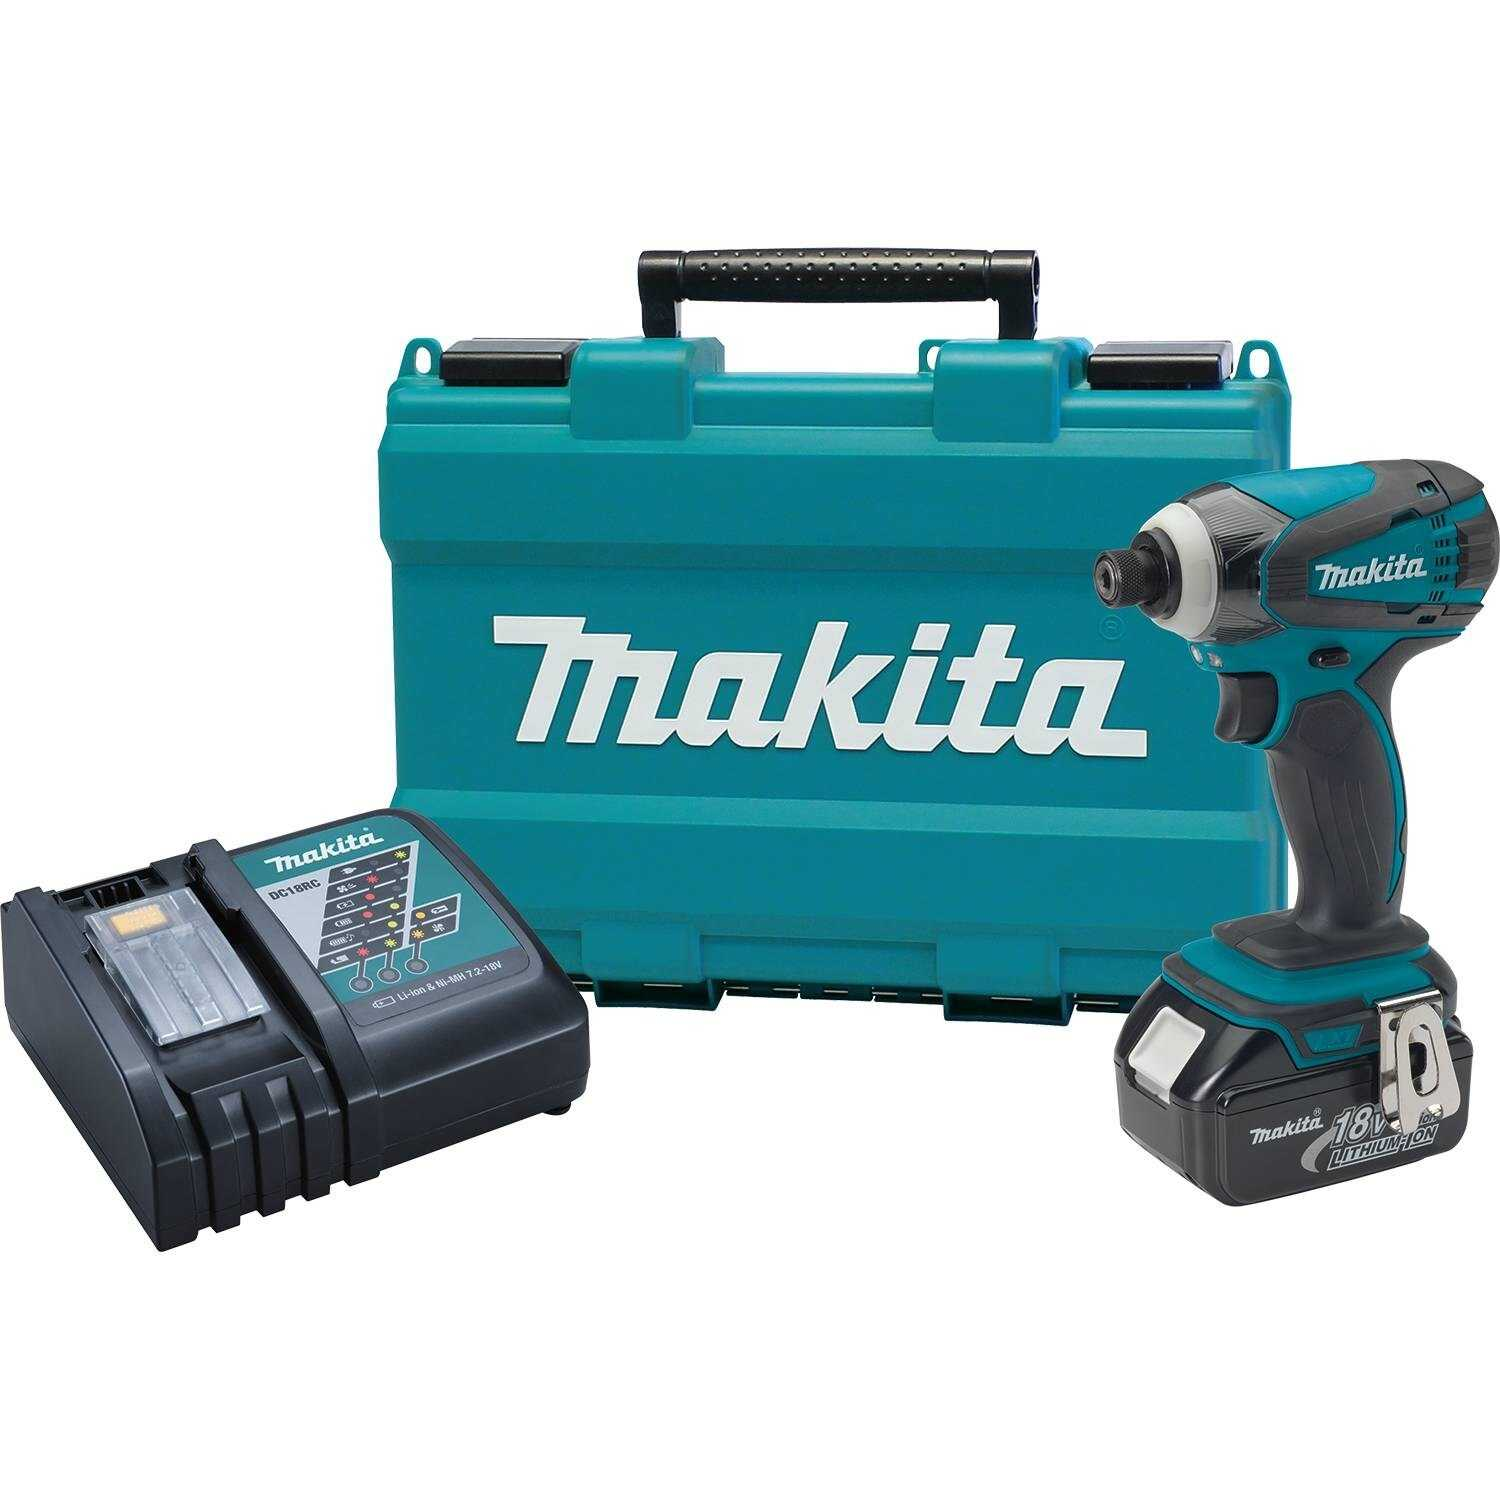 Makita  LXT  18 volt 1/4 in. Hex  Cordless  Impact Driver  Kit 1420 in-lb